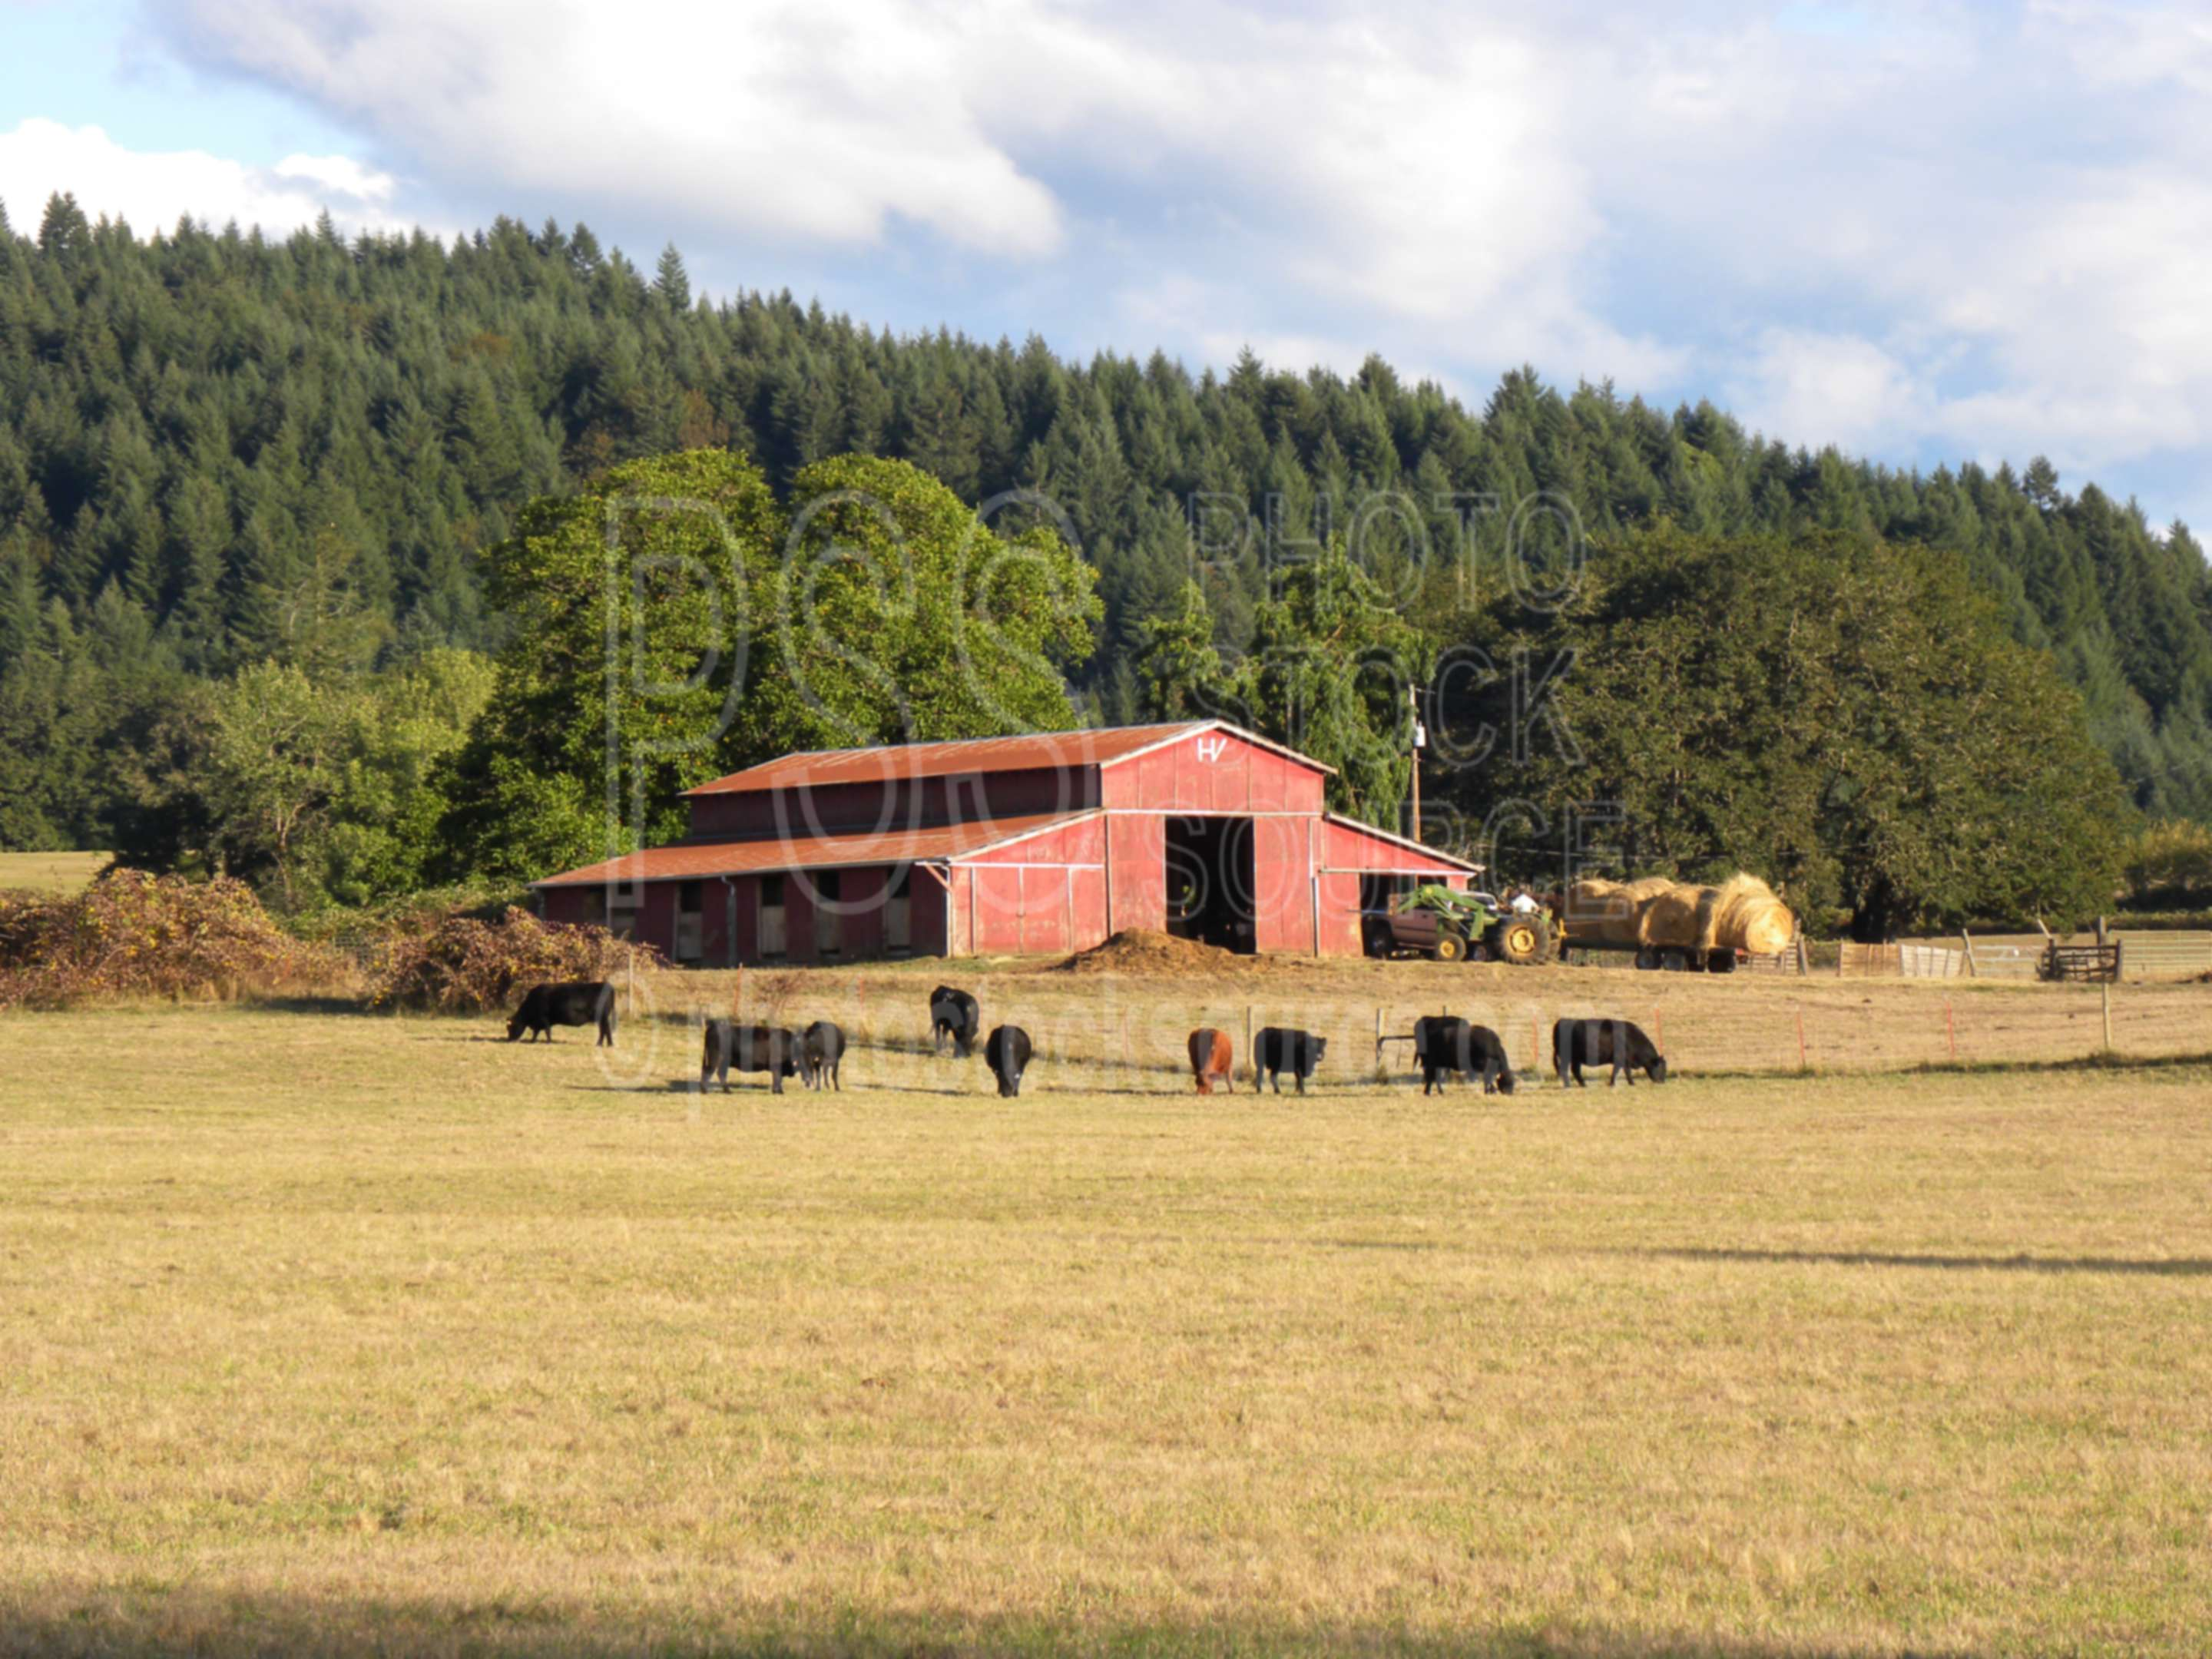 Red Barn and Cows,hay,tractor,farmer,cows,haying,farms